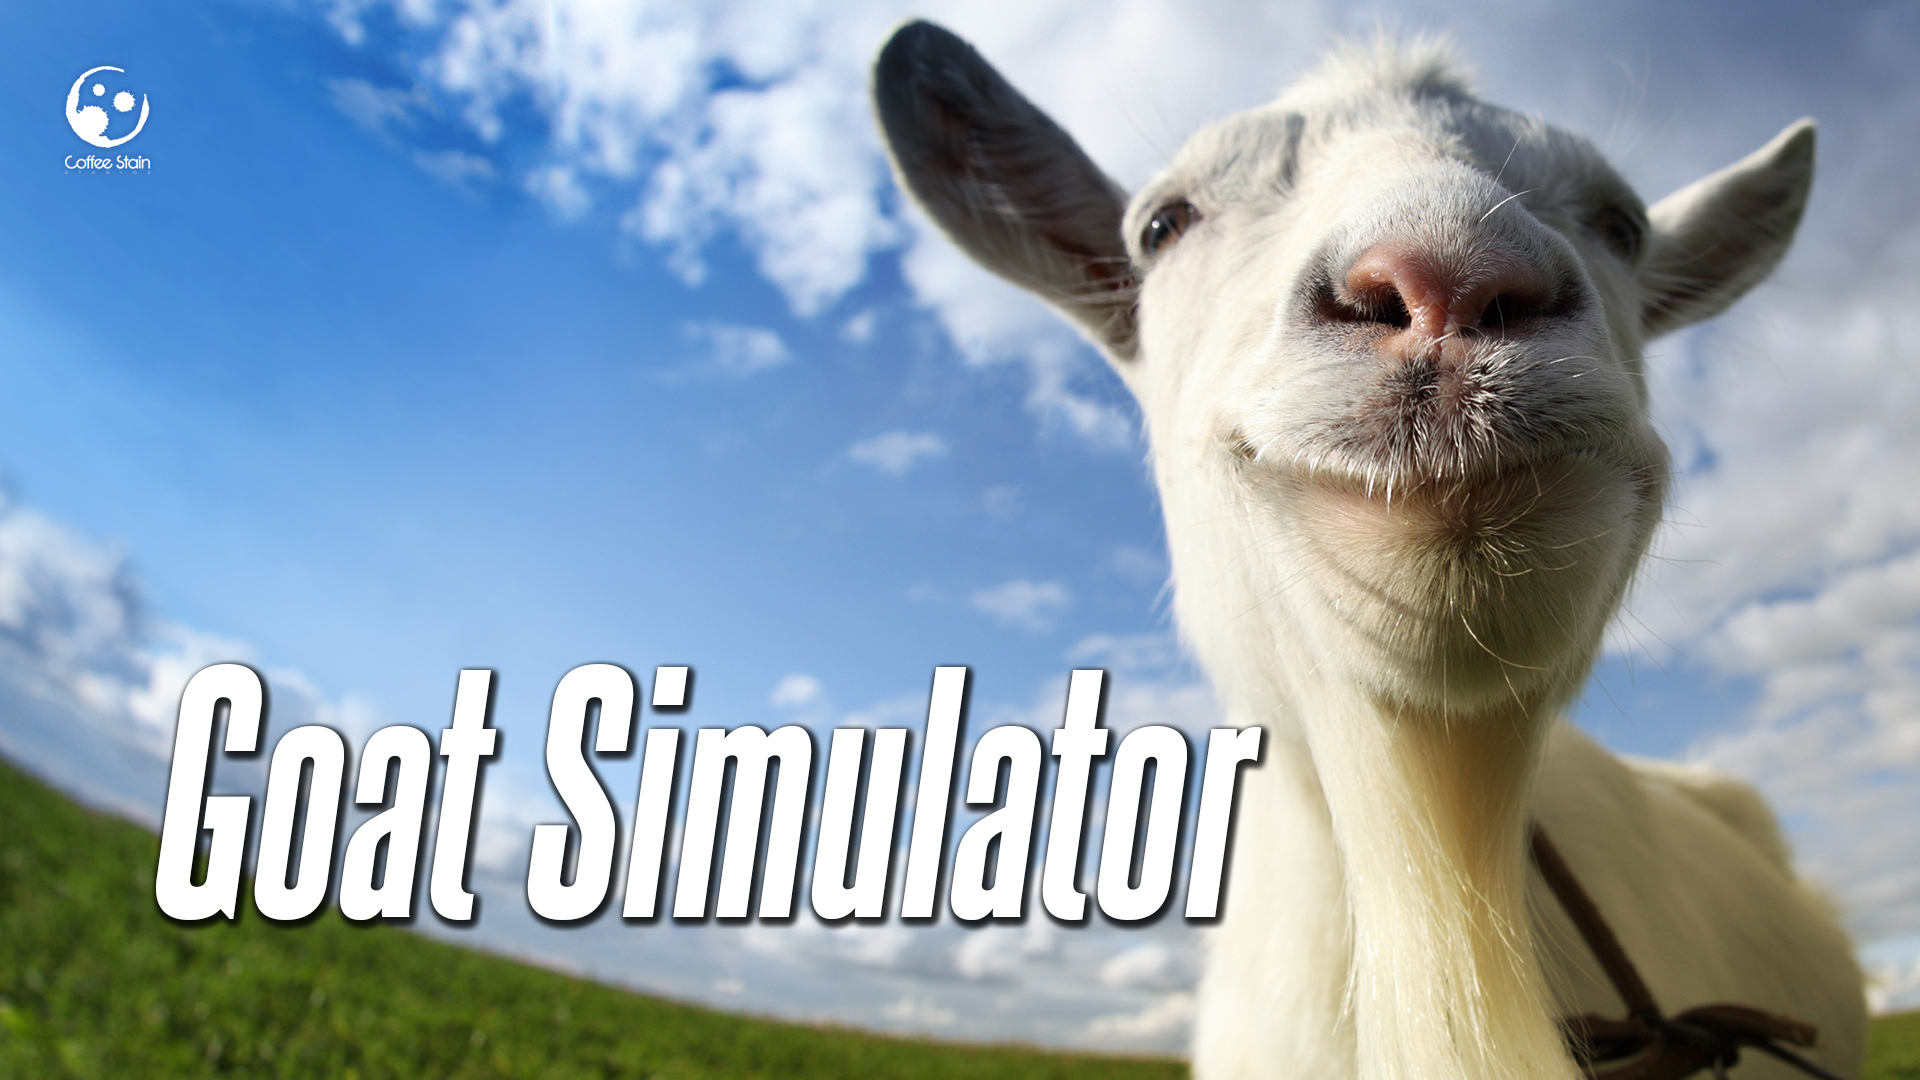 Publisher will release Goat Simulator as a boxed product in the UK